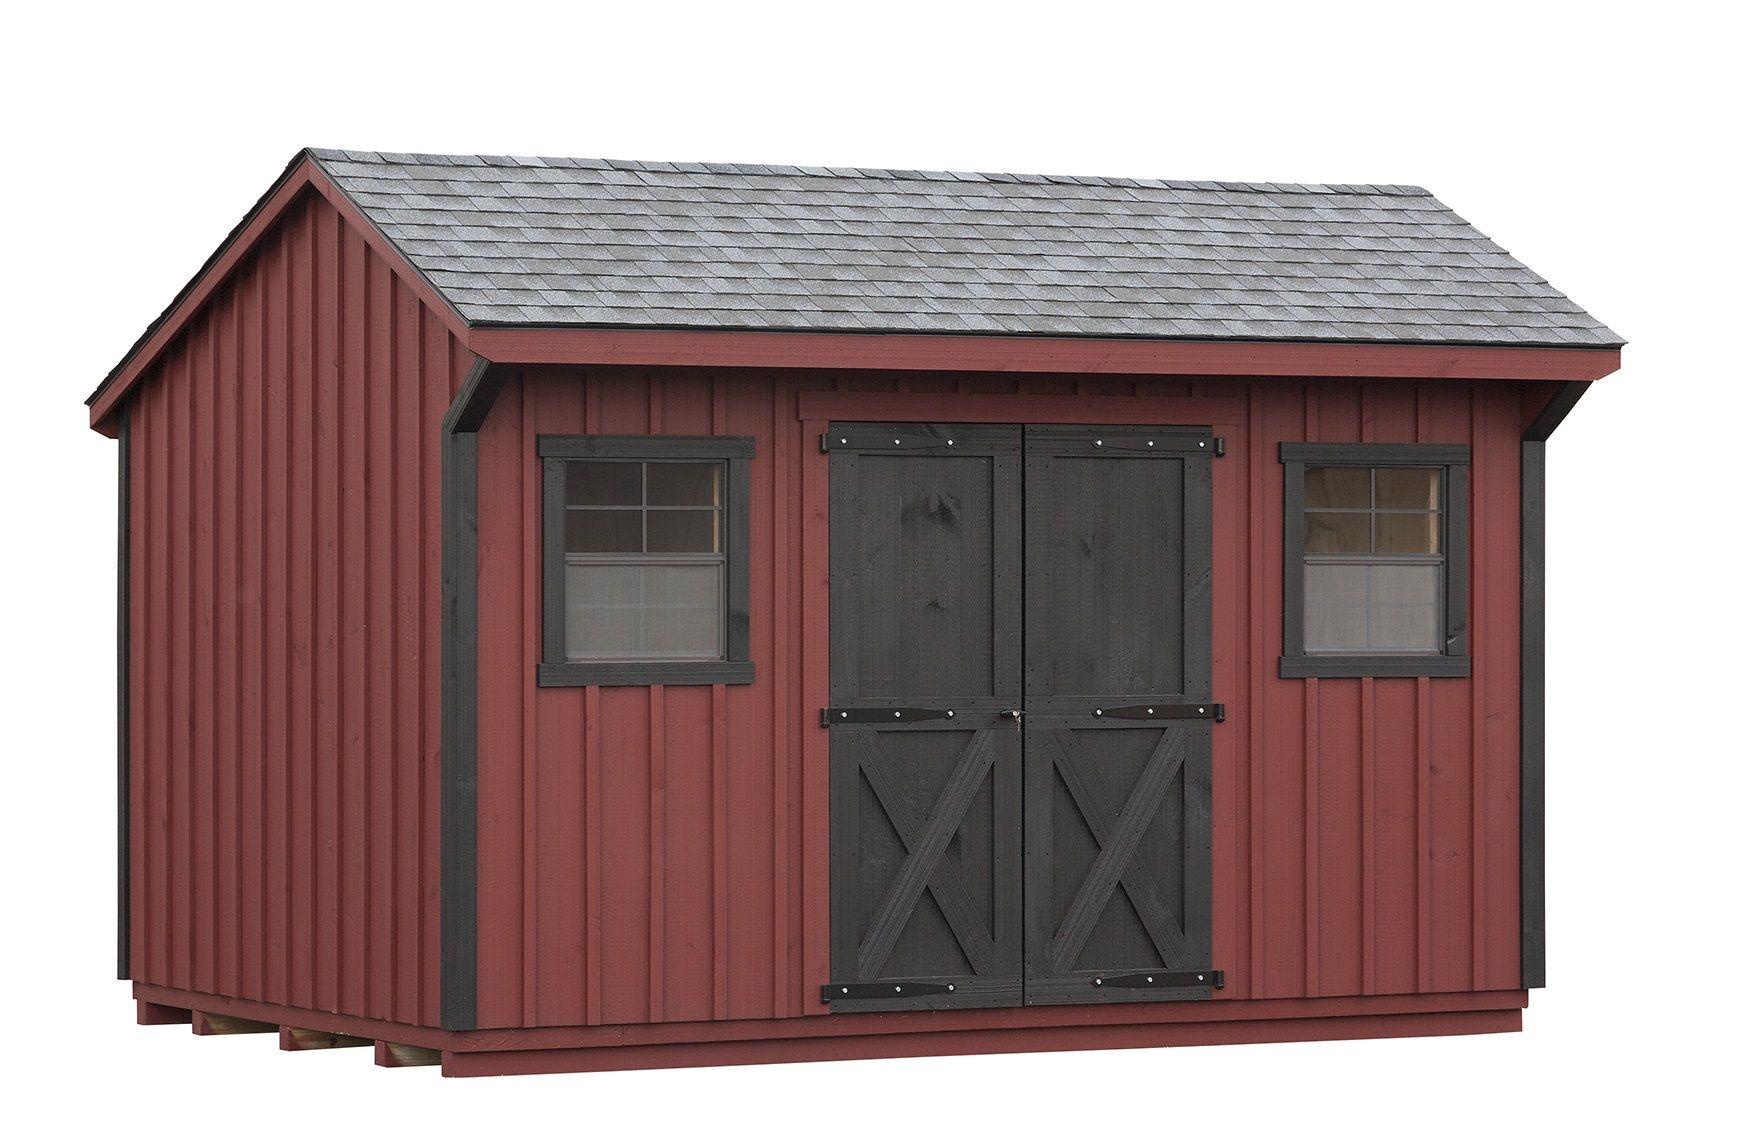 This 10x14 Manor Shed In Pewter Gray Shingle Has Red Paint With Solid Black Doors And Black Corner Trim Shed Plans Wood Shed Plans Shed Storage